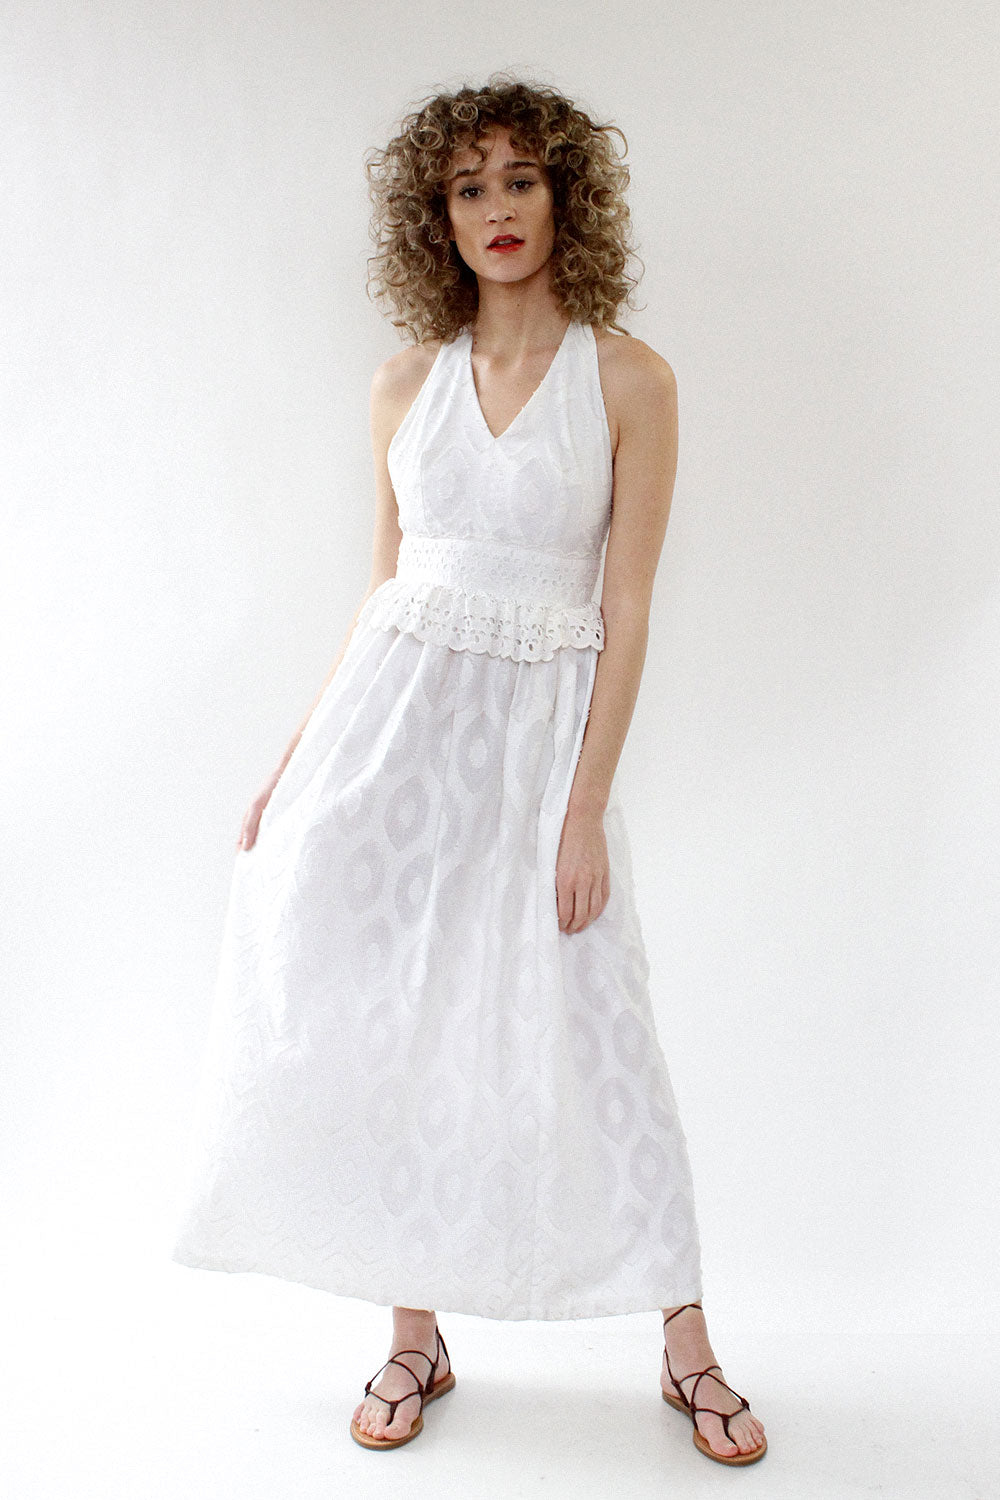 Eyelet Cloud Halter Dress XS/S